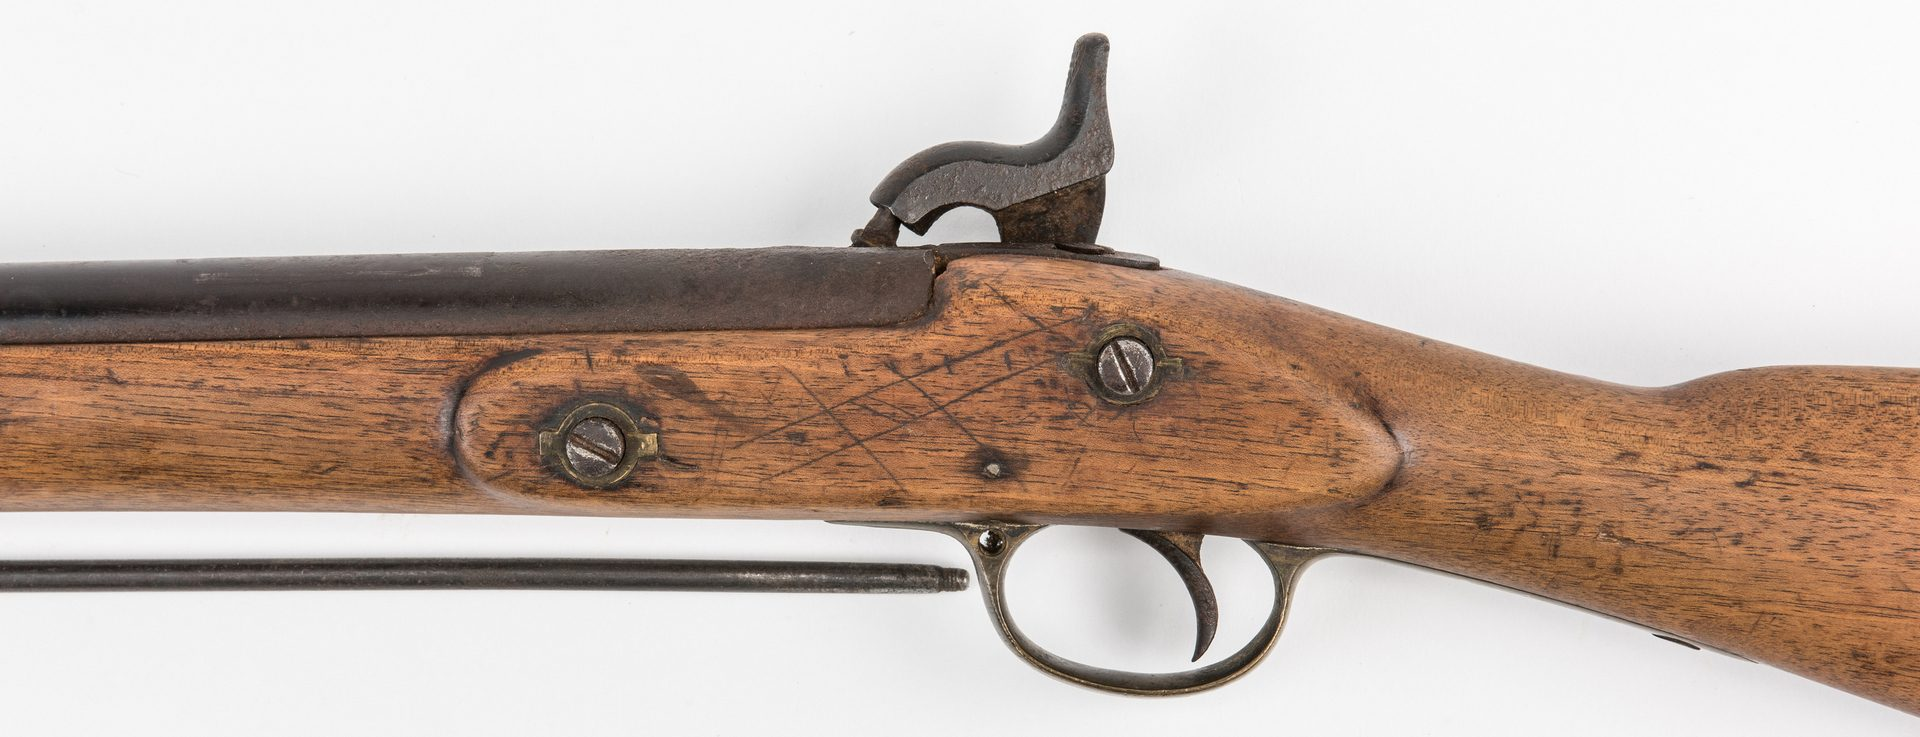 Lot 321: Barnett London Percussion Musket-Rifle, Enfield pattern, .577 cal